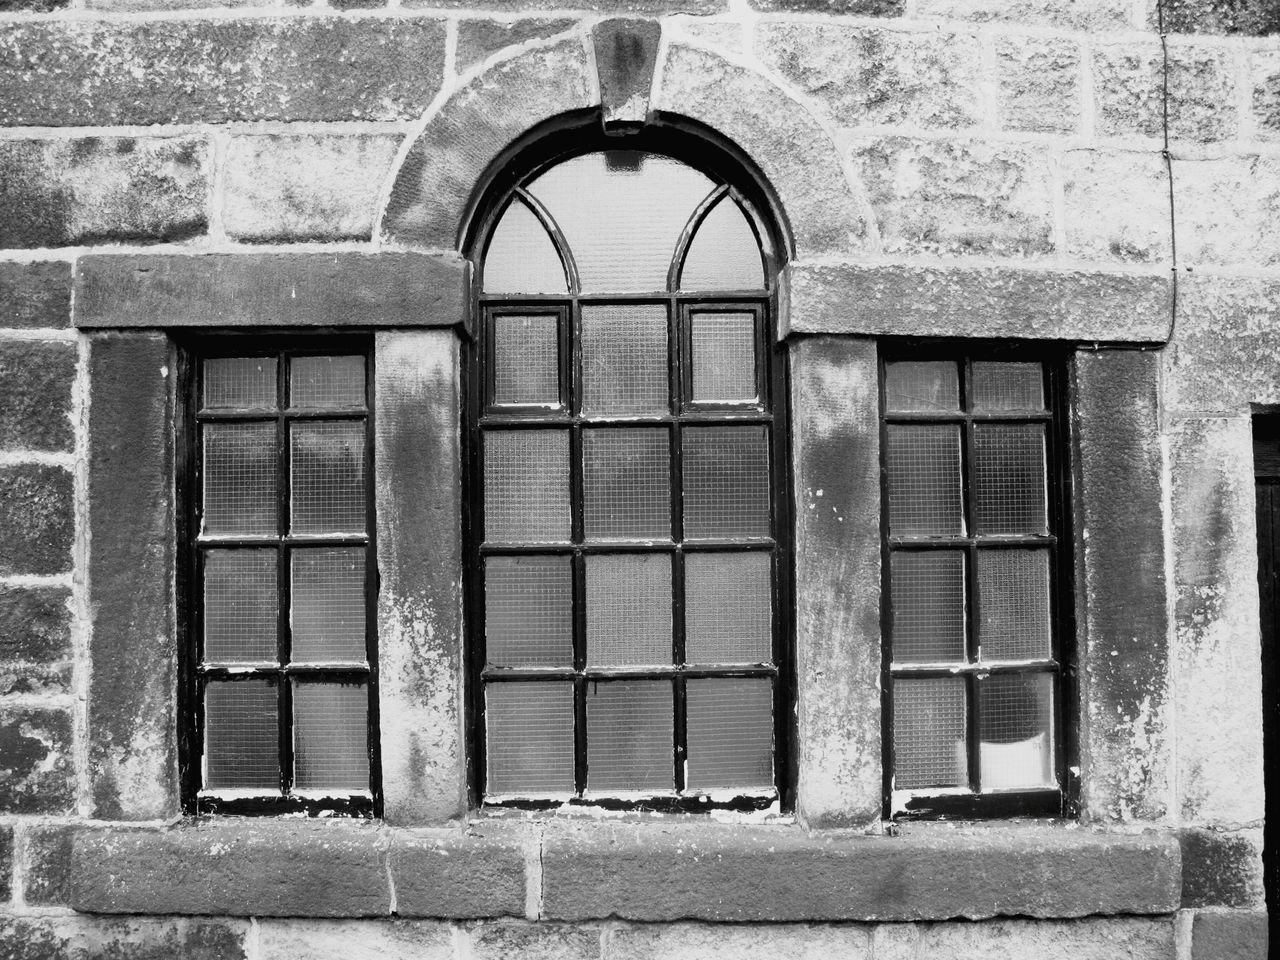 Pattern Pieces Arch Arched Windows Detail Houses Black & White Monochrome Black And White Stone Wall Buildings Heptonstall Learn & Shoot: Balancing Elements Light And Shadow EyeEm Best Shots Heptonstall Museum Hebden Bridge Quaint  Village House Building Old Architecture England Old School House Simplicity Bricks